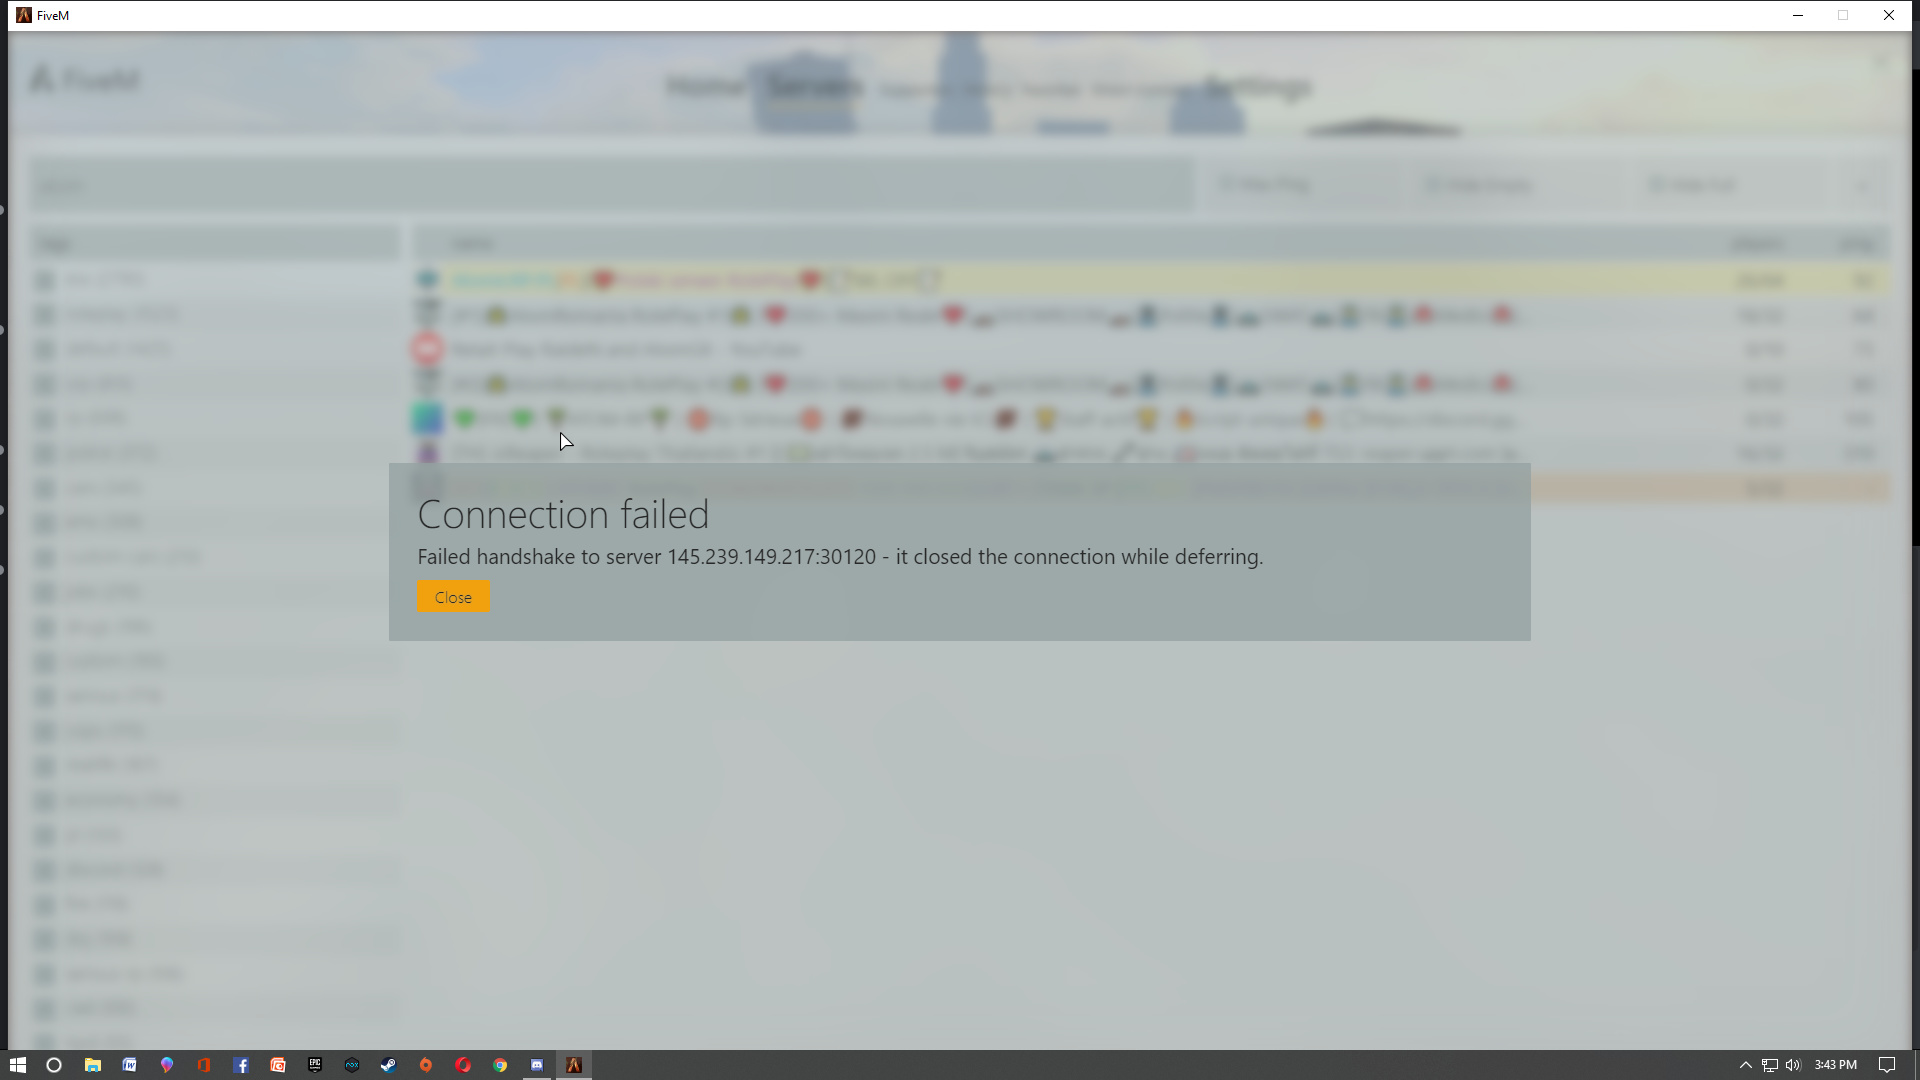 Failed to connect server (handshaking,that is tell me) - Technical